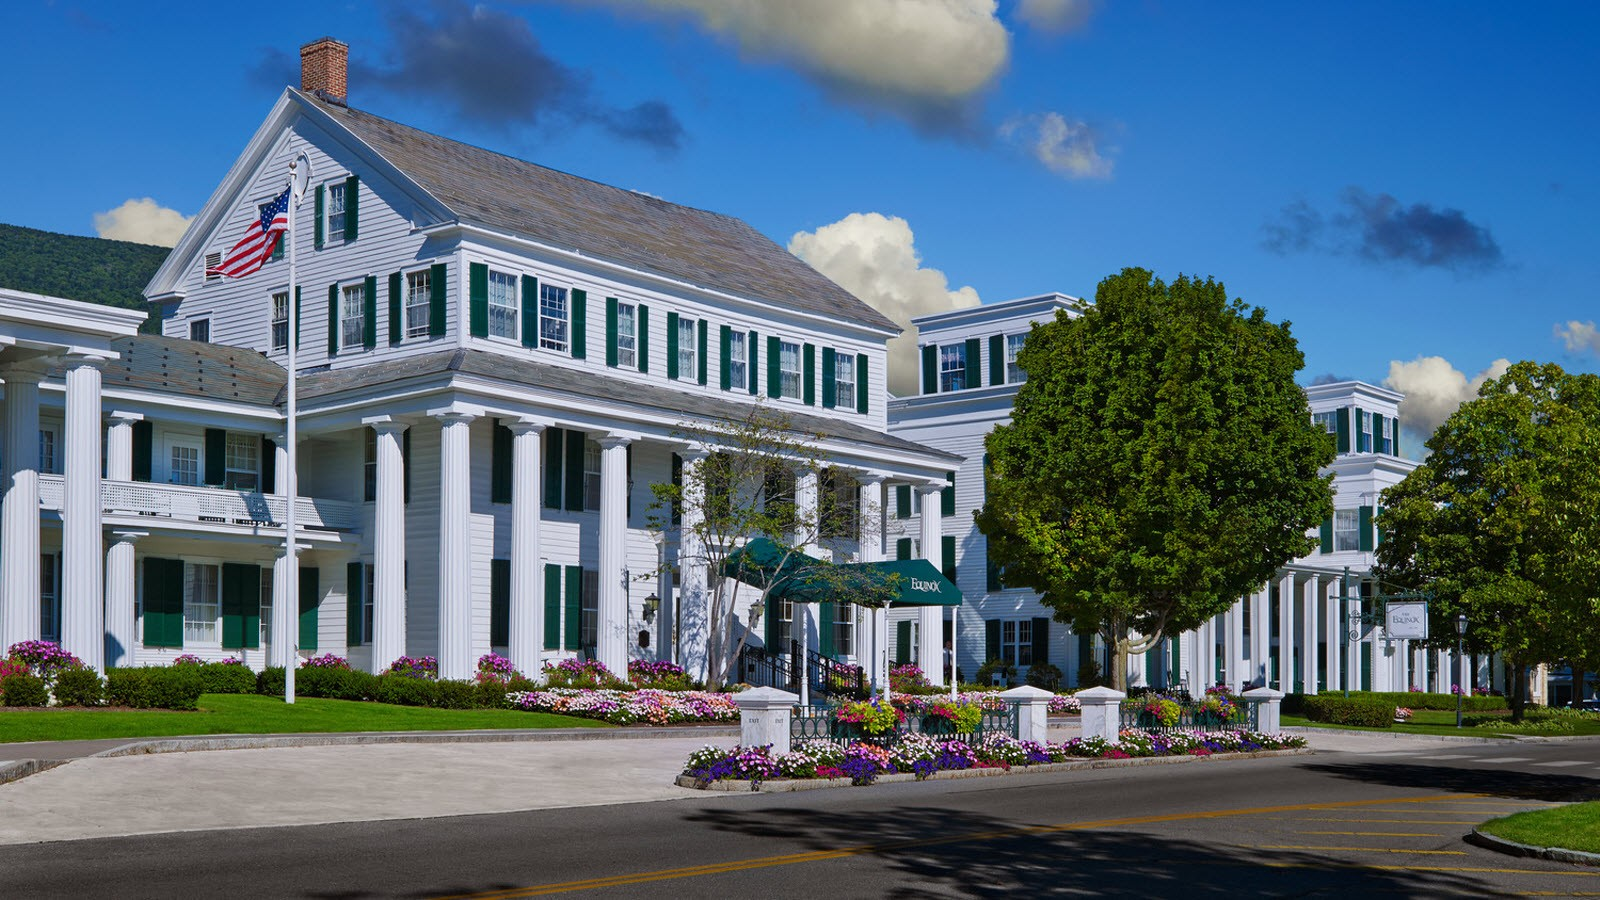 Historic Equinox Hotel in Manchester Village, VT